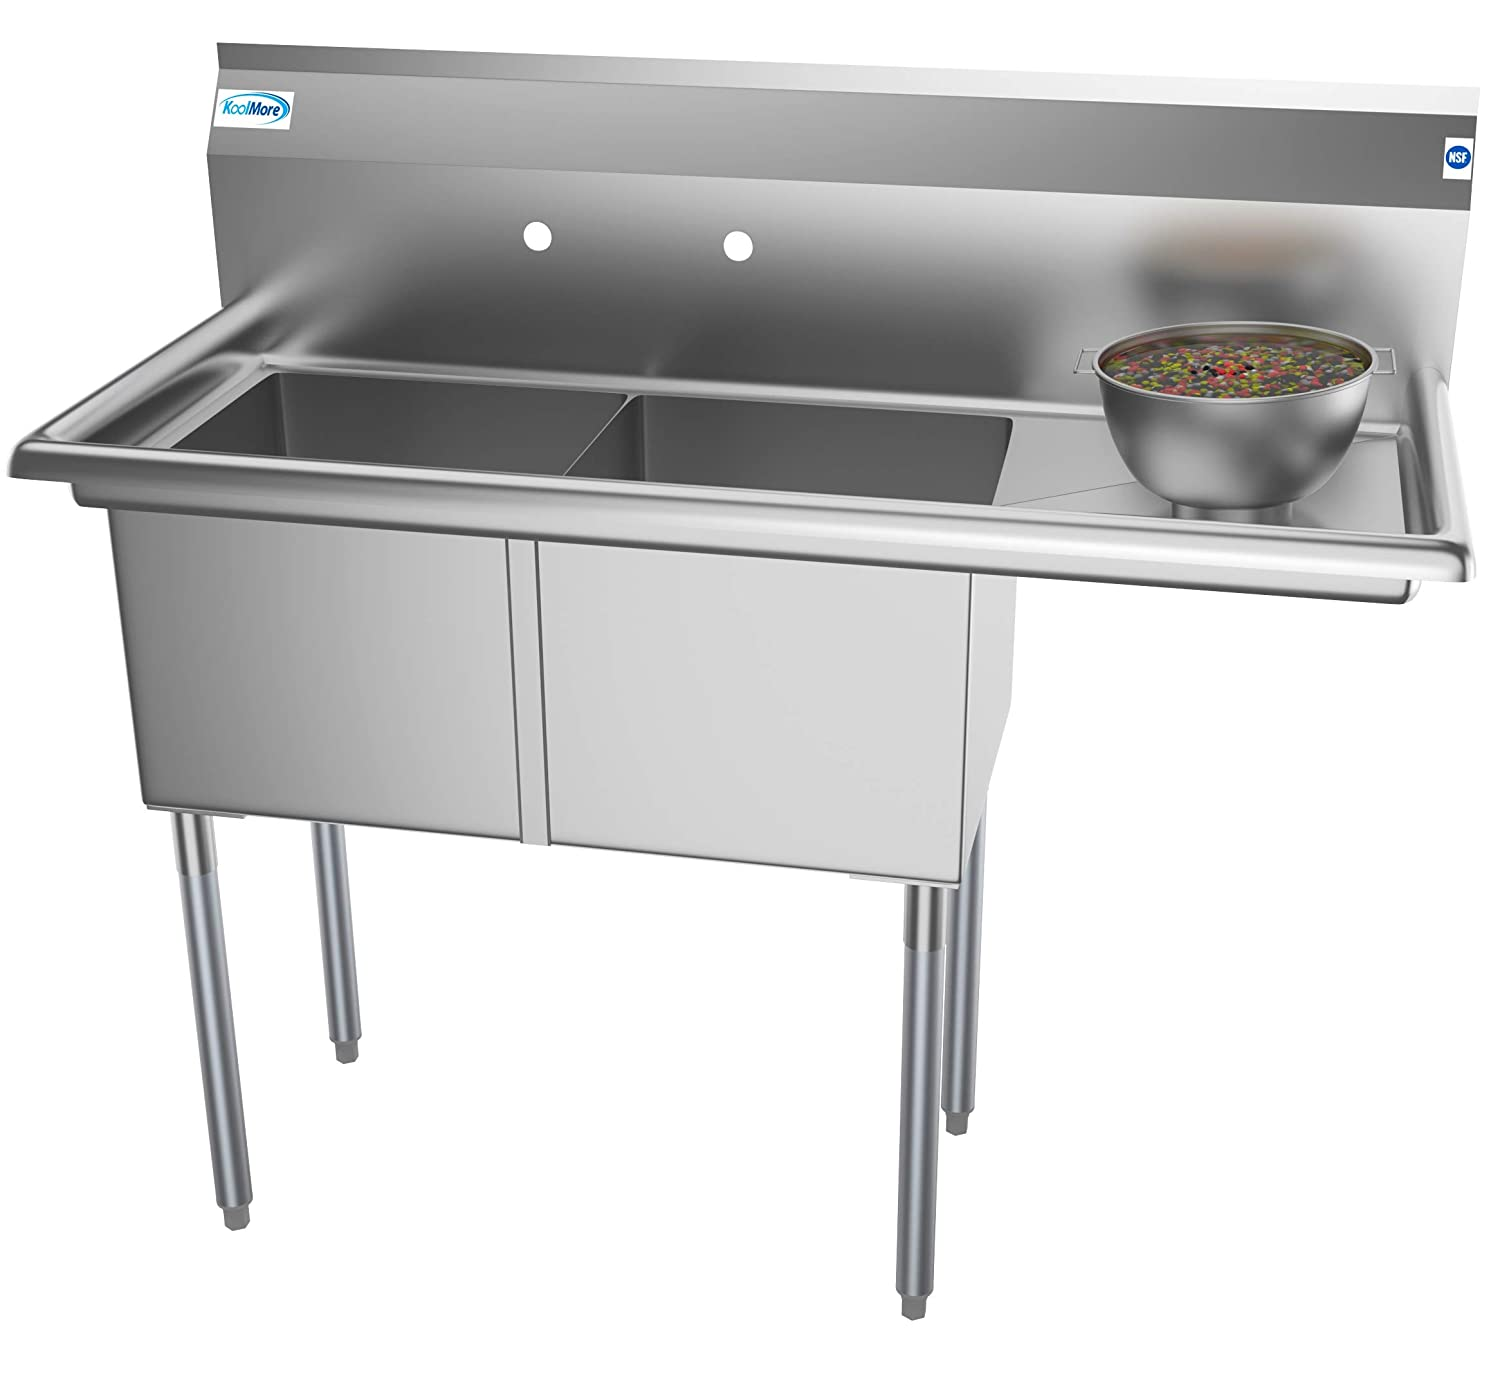 "KoolMore 2 Compartment Stainless Steel NSF Commercial Kitchen Prep & Utility Sink with Drainboard - Bowl Size 15"" x 15"" x 12"""